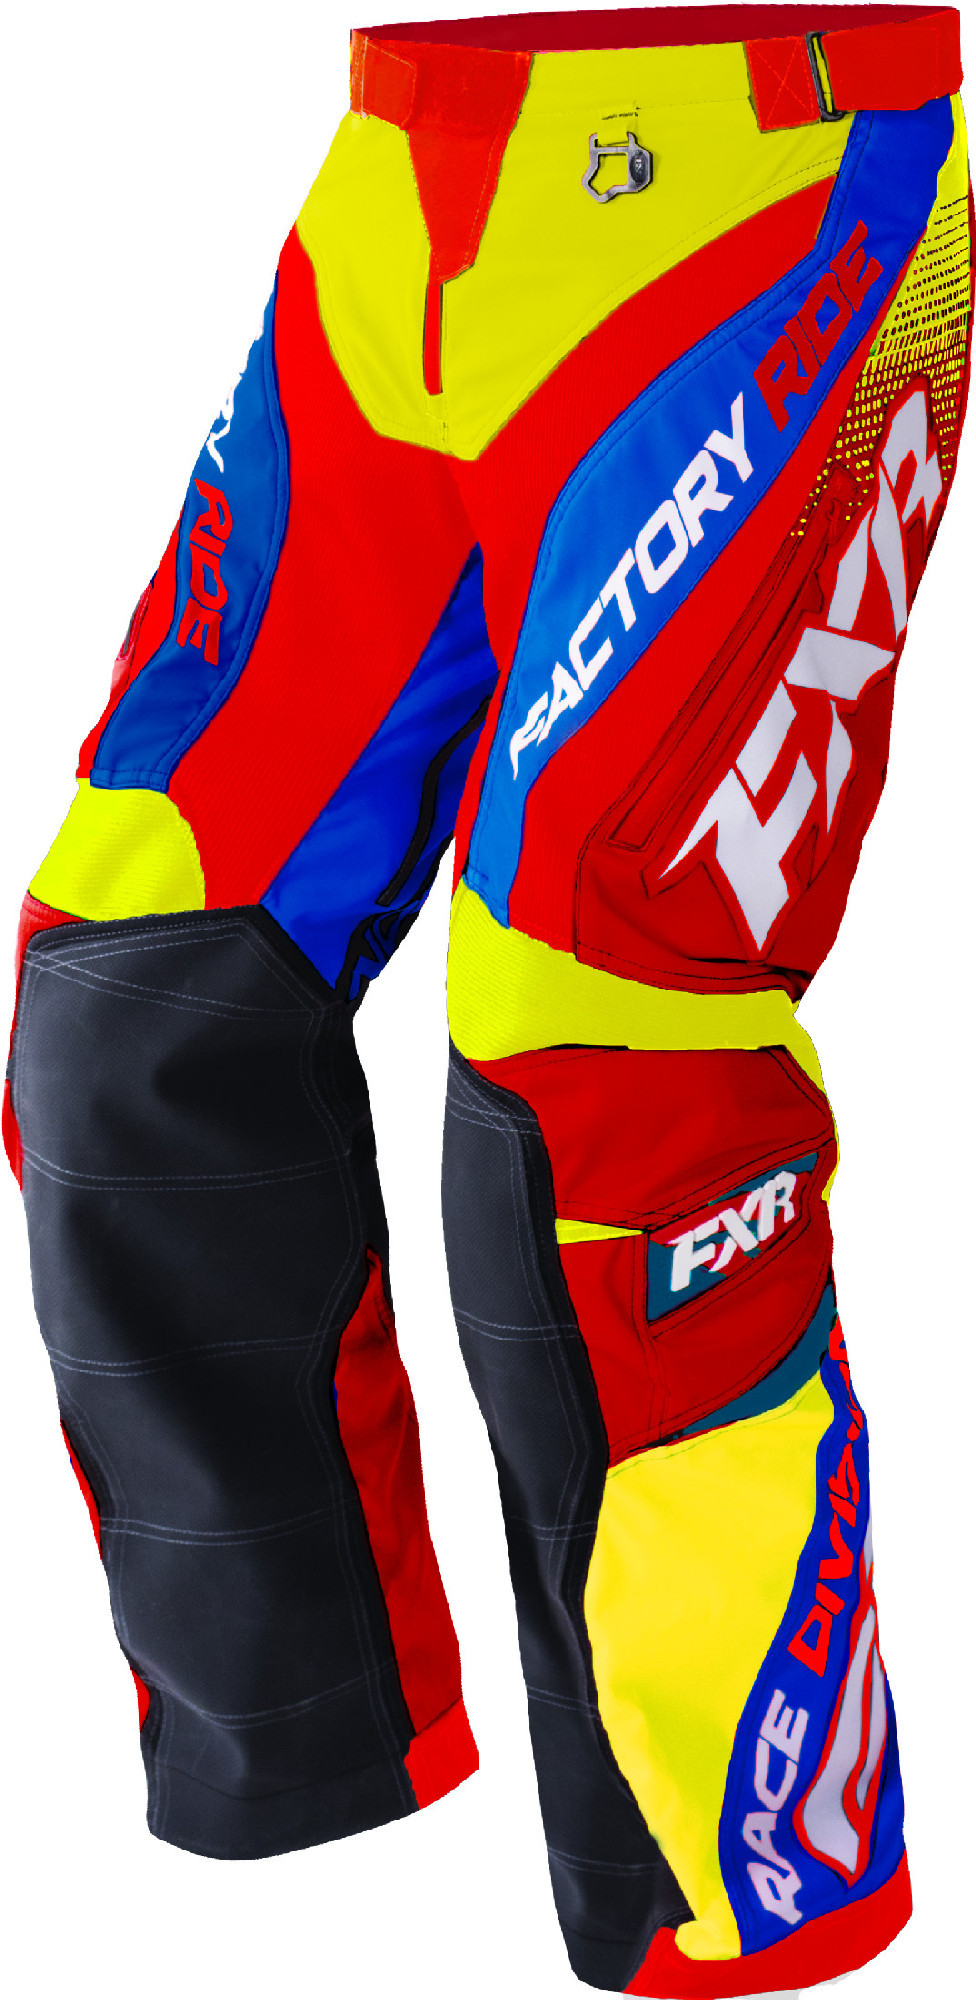 FXR Cold Cross Race pant Mens Snowmobile Sled pant Shell Skiing pant large